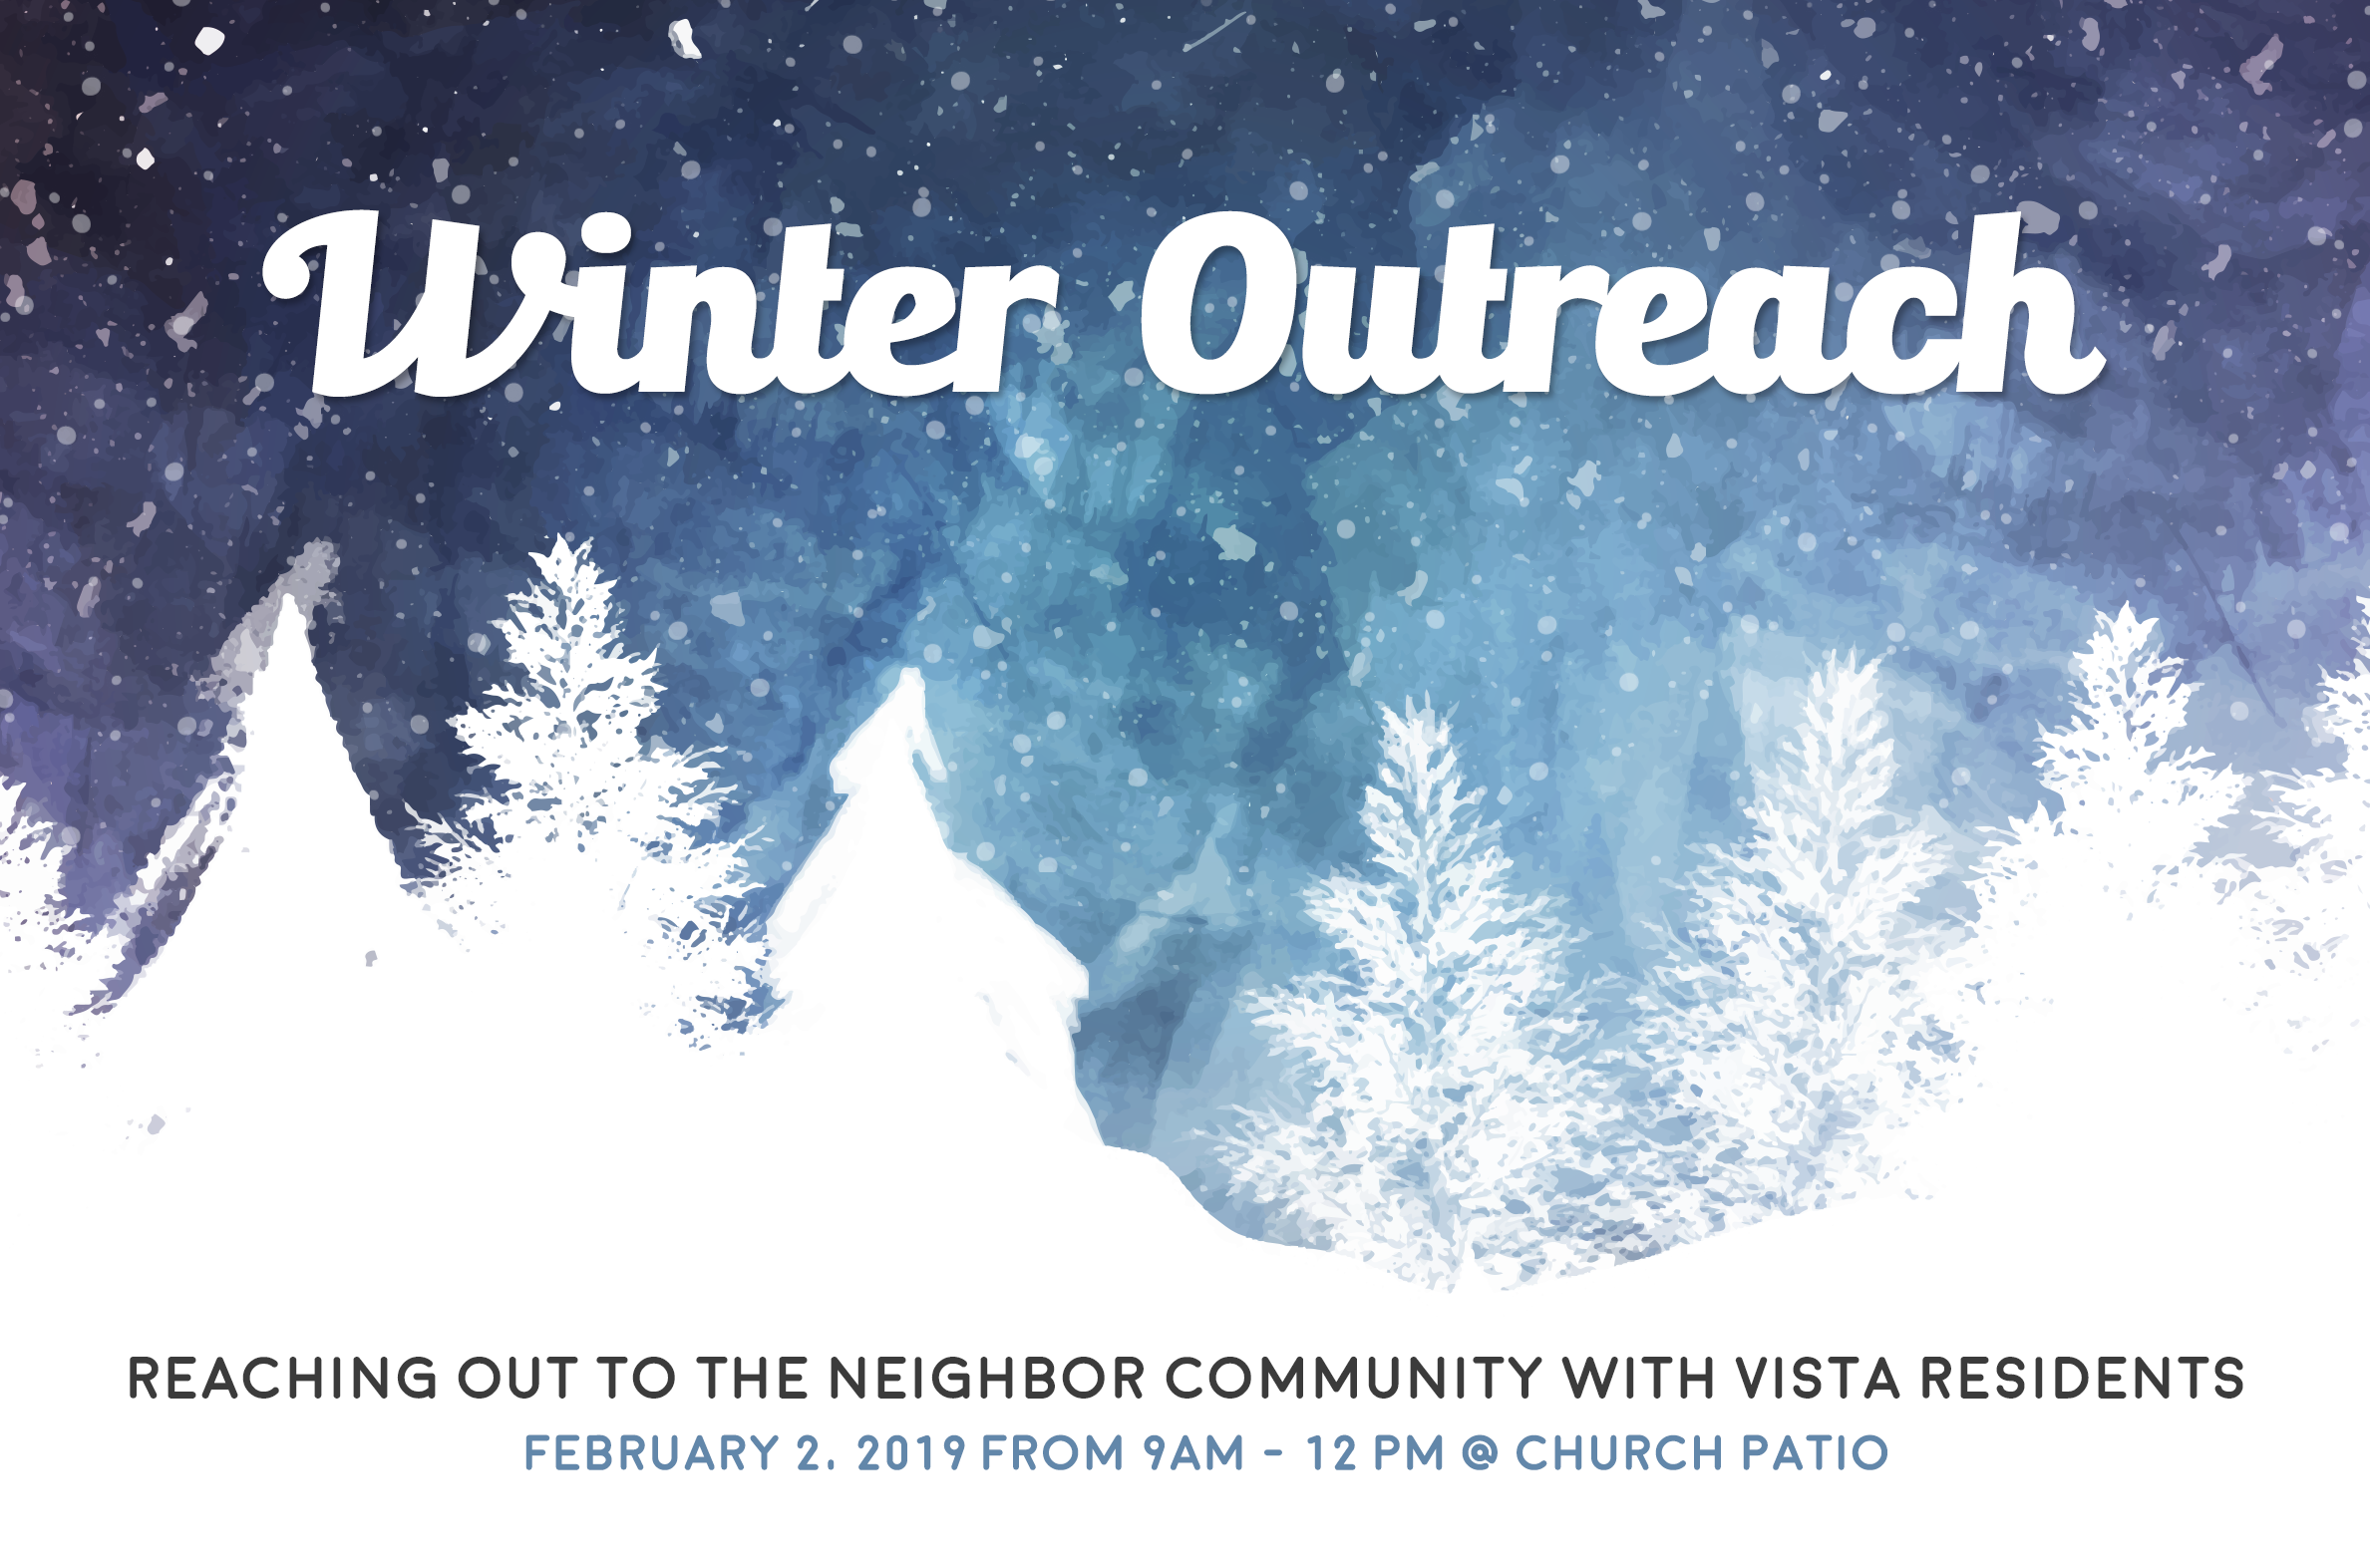 WinterOutreach2019_3-2.png